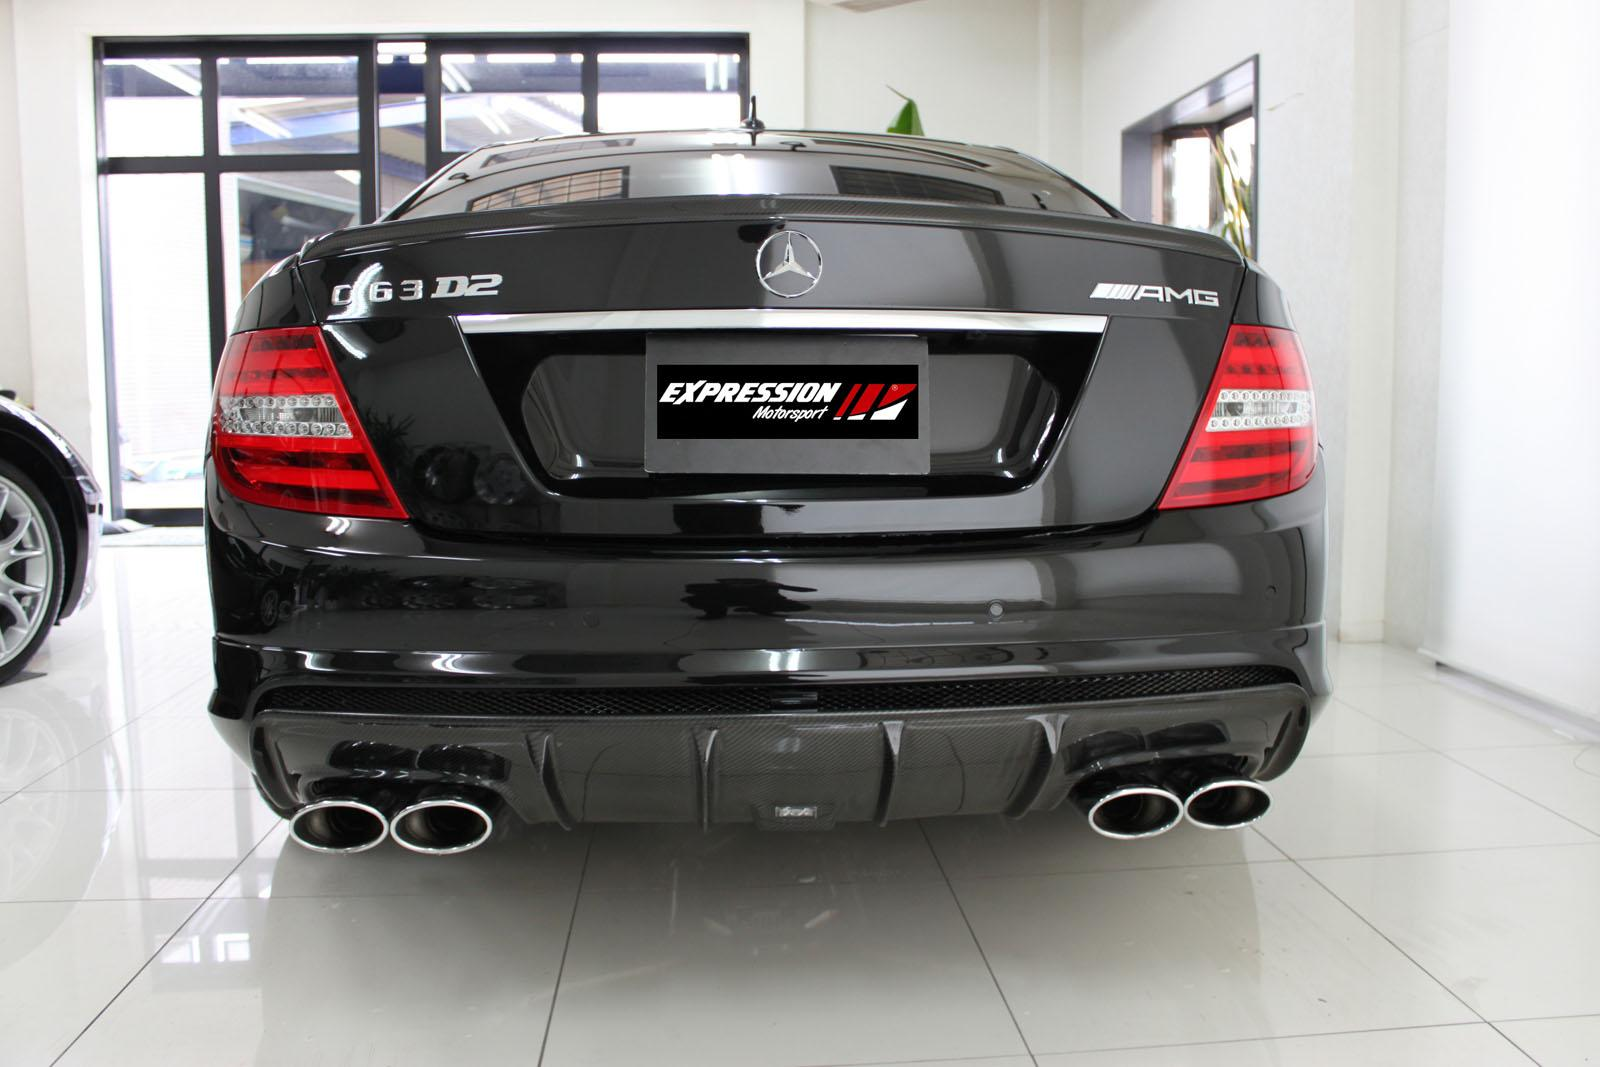 Mercedes C Class W205 likewise Mercedes Benz C200 And C220 Used Review 2007 2011 34739 besides C230 Fog Light reviews together with Official Carlsson Mercedes Benz C Class Amg Sport additionally Mercedes Benz C Class C200 Kompressor Avantgarde Touchshift 2010 Id 2515715. on 2010 mercedes benz c180